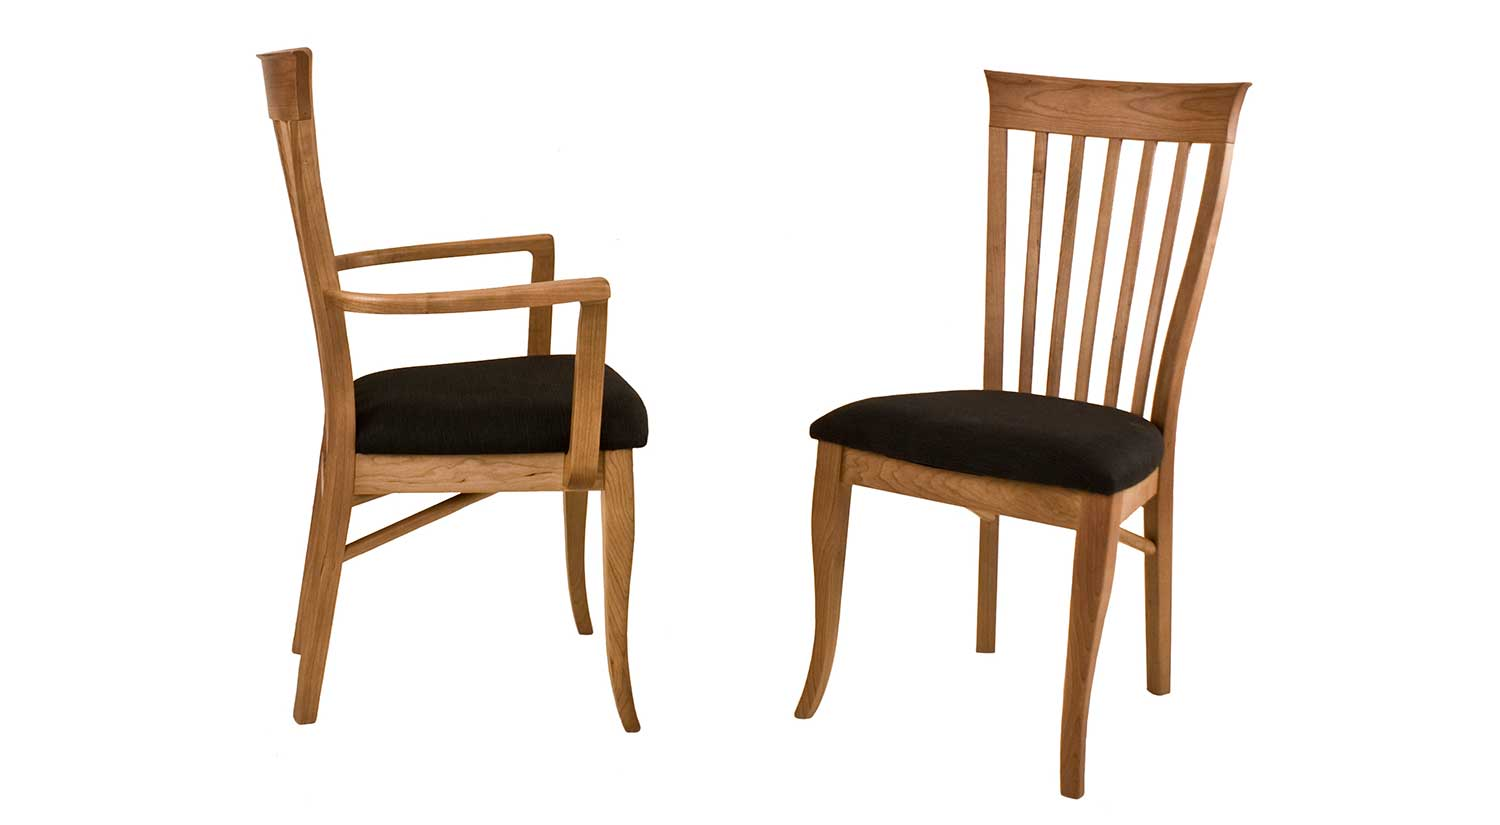 circle furniture chairs ethan allen dining room berkeley chair boston